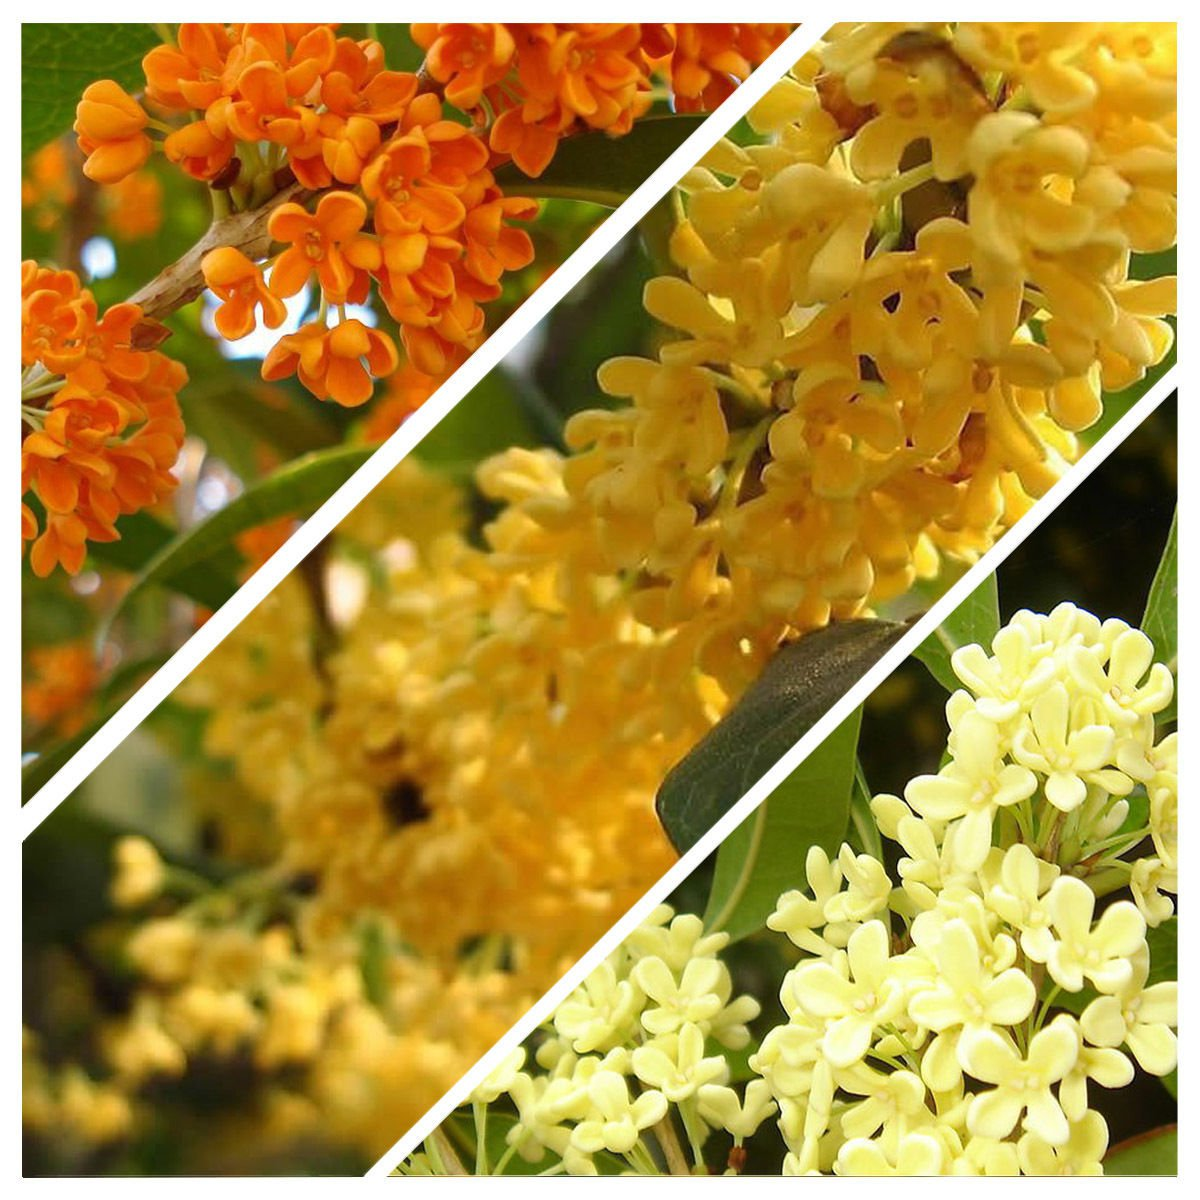 5 Osmanthus fragrans Sweet Olive MIX seeds one of the most fragrant tree *SHIPPING FROM US* CombSH